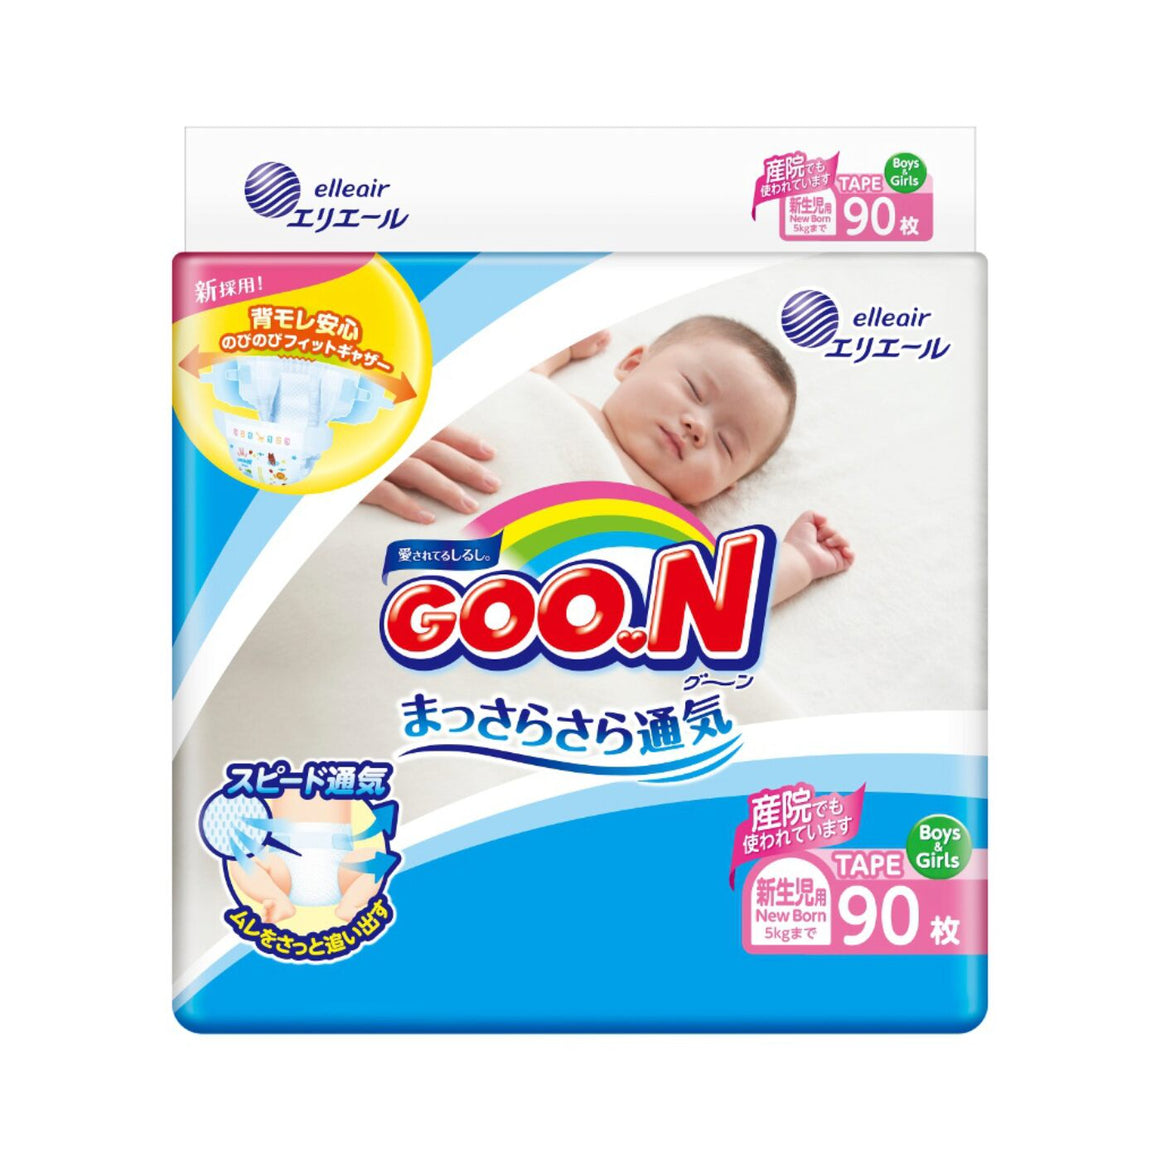 ELLEAIR GOO.N Baby Diaper NB Size (90 Sheets) (with Tape Straps)-For Great Vancouver Area Only!